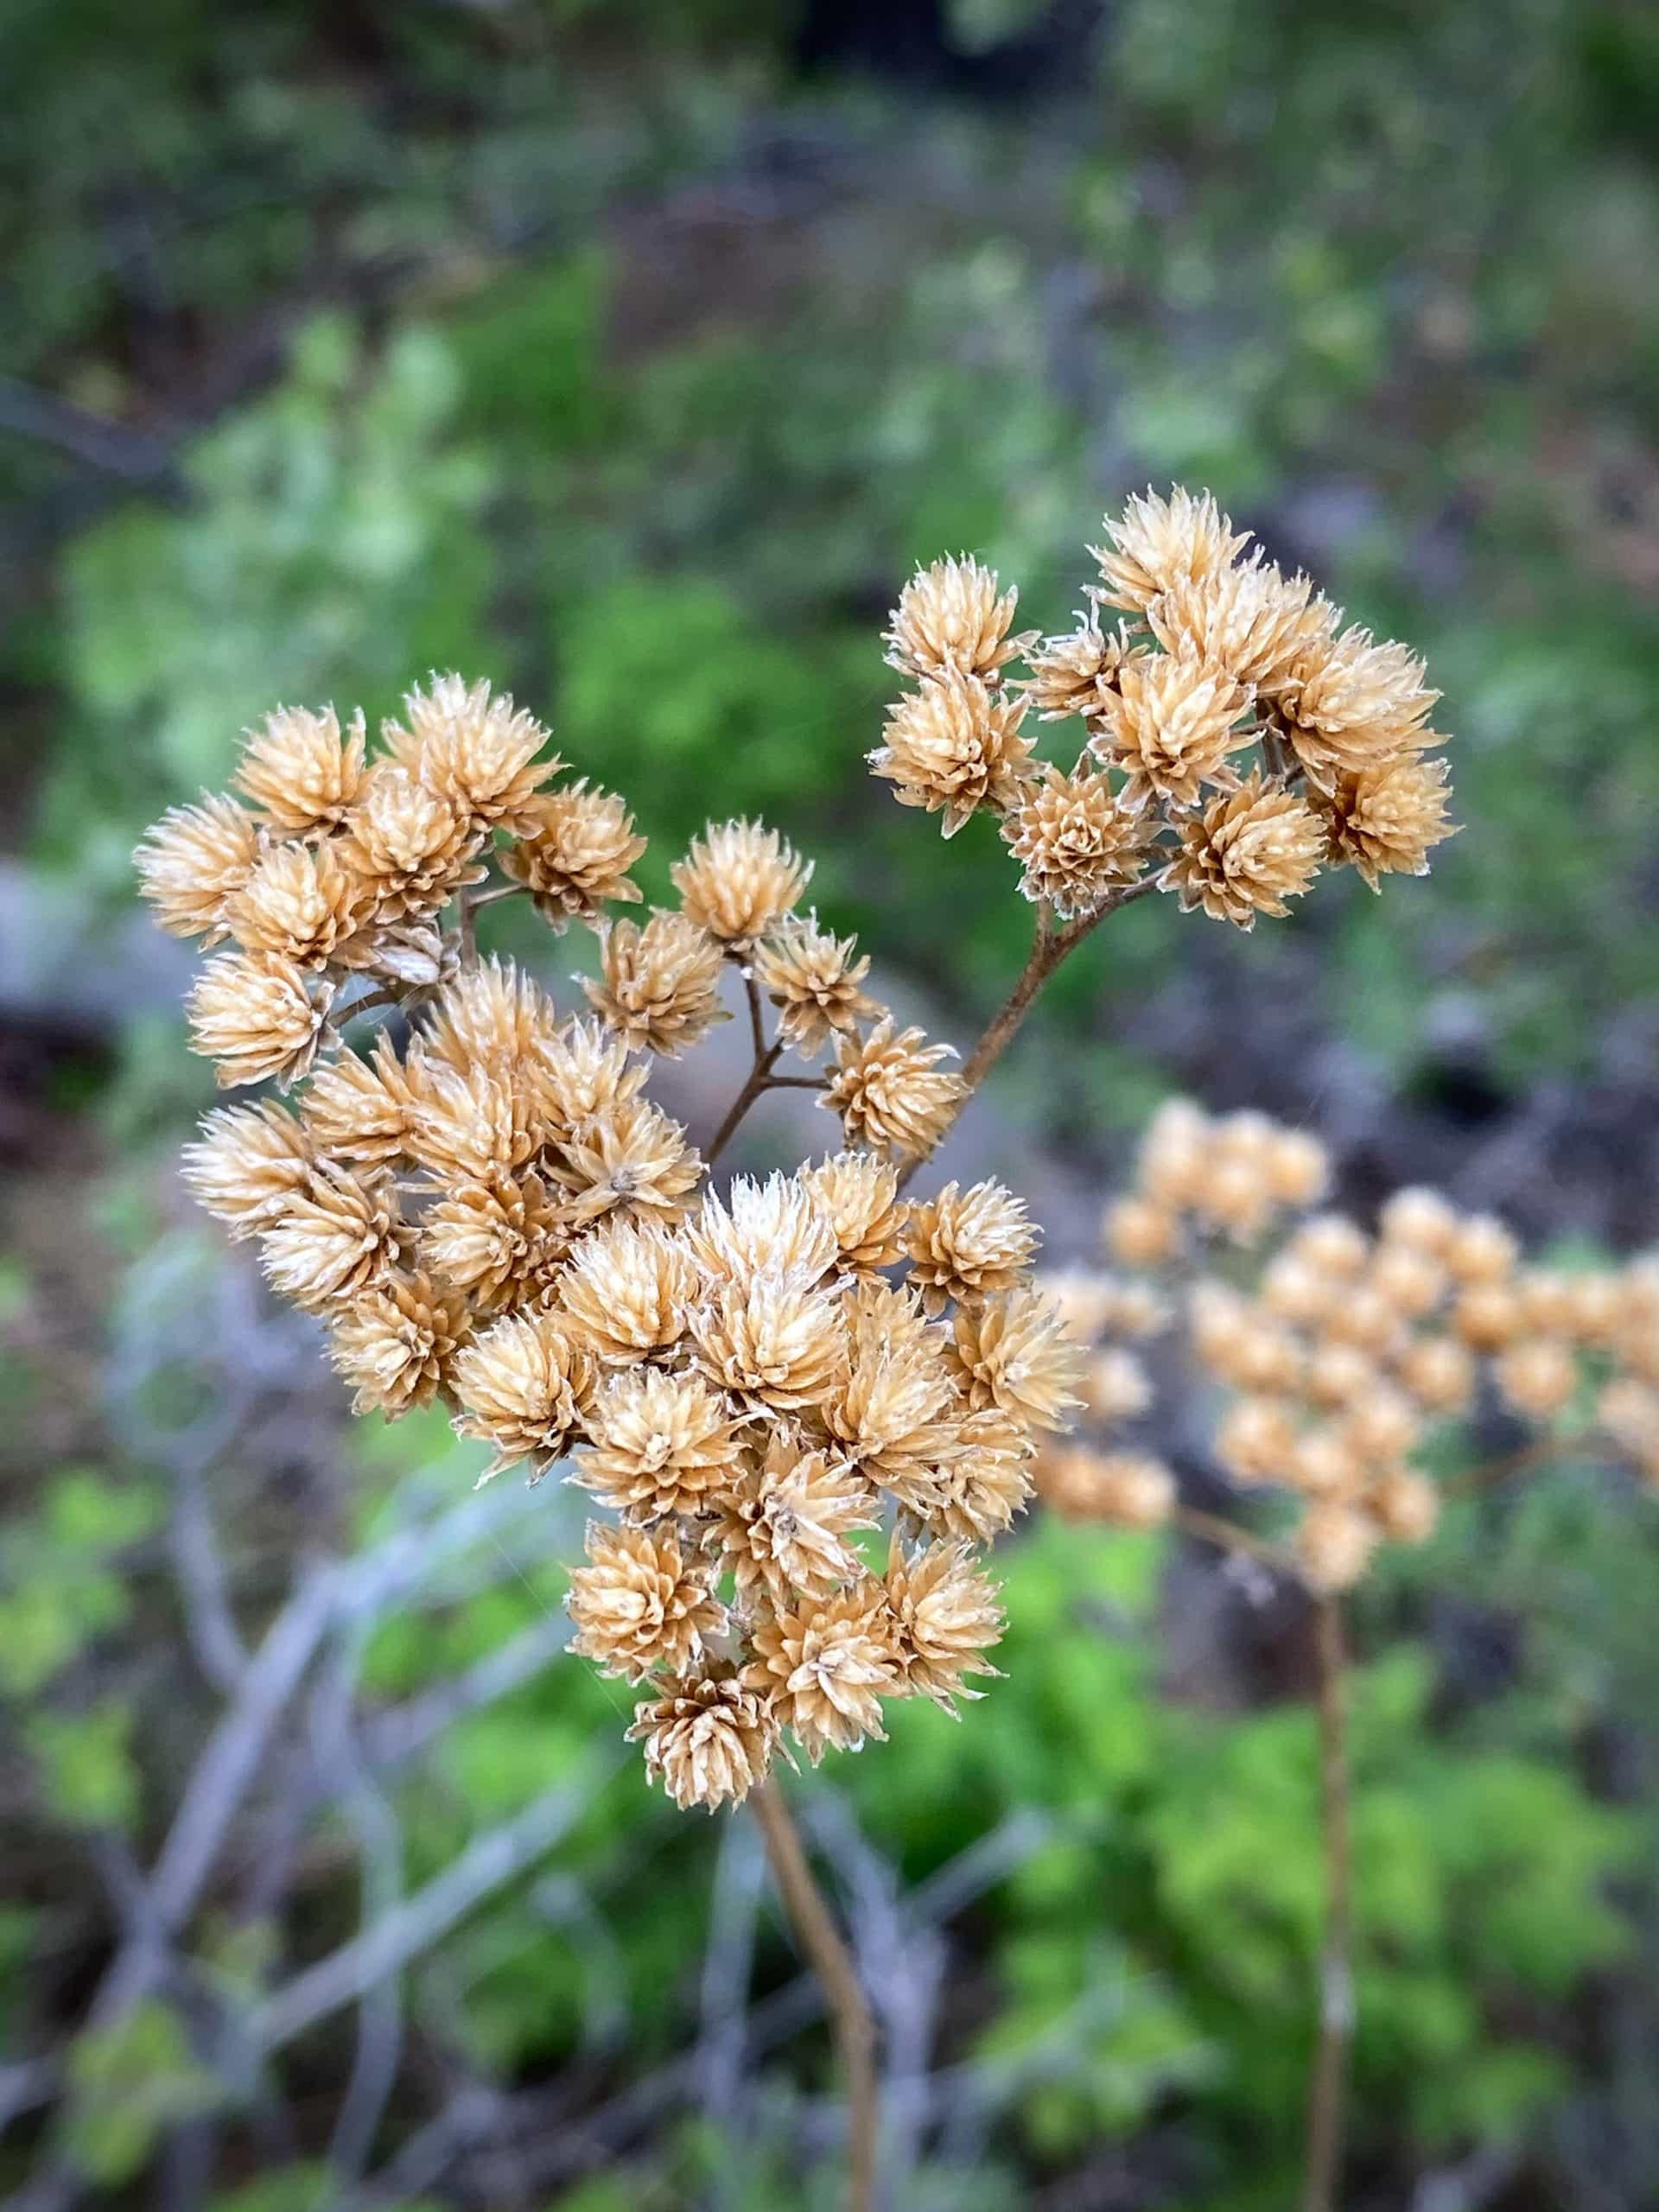 Flowers found in the Ochoco National forest near Paulina, OR.